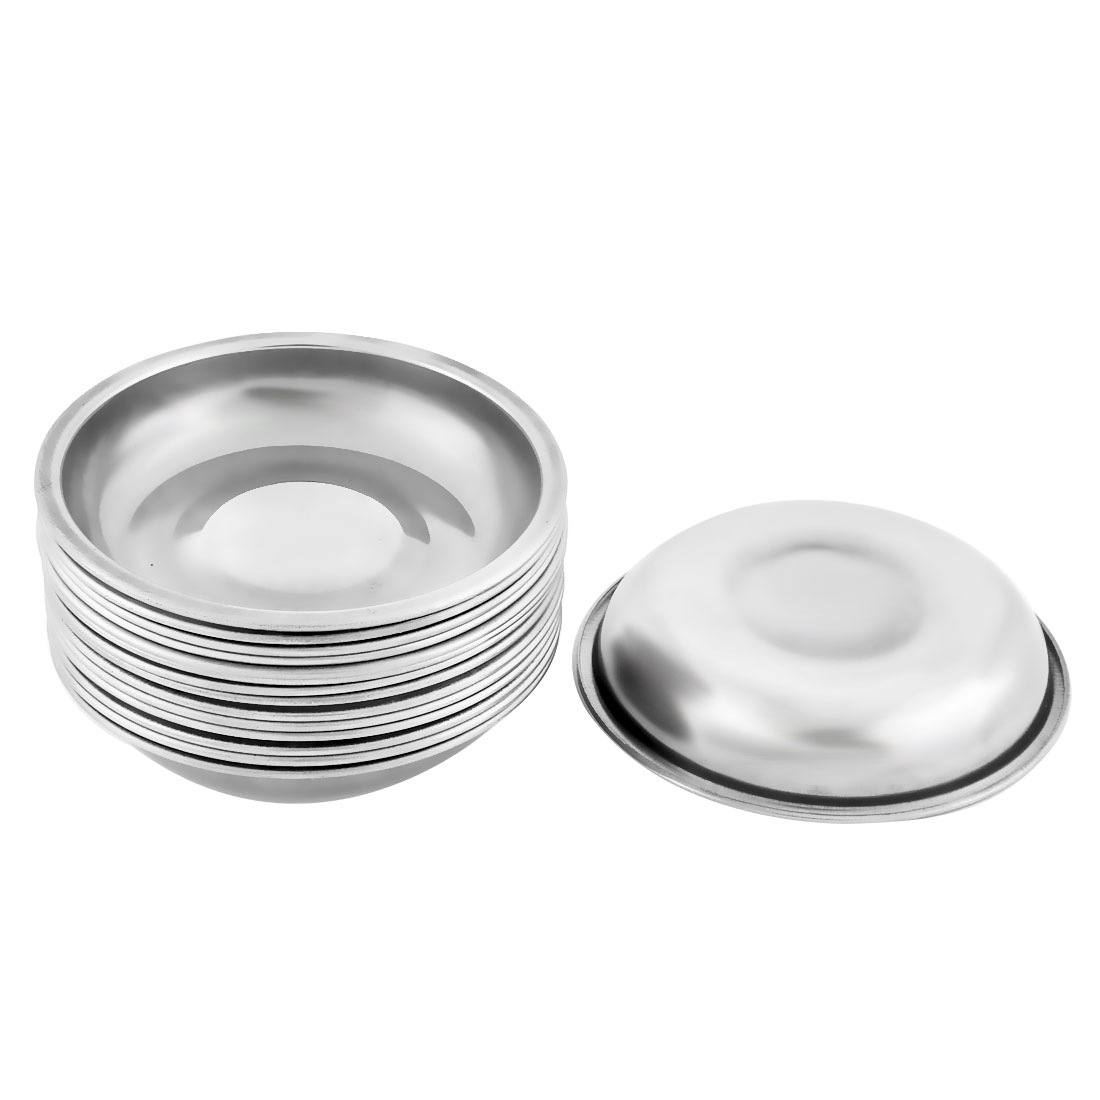 Household Metal Round Shaped Soy Sauce Spice Dipping Serving Dish Silver Tone 15 Pcs